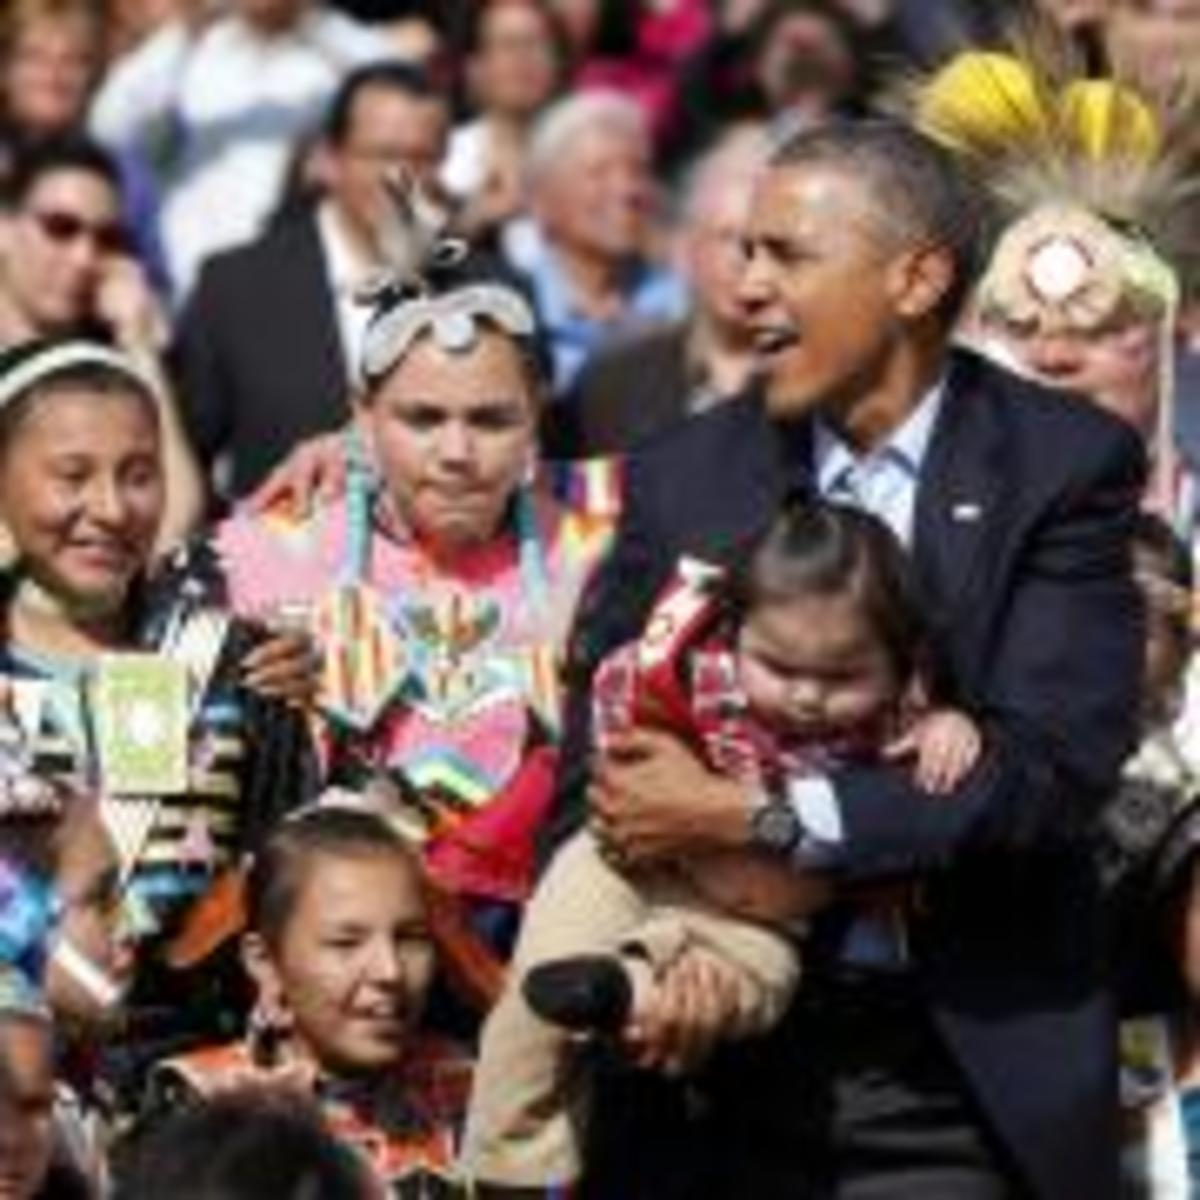 President Barack Obama poses with Native America dancers during his visit to the Standing Rock Indian Reservation Friday, June 13, 2014, photo in Cannon Ball, North Dakota. It was this visit to Standing Rock that got the ball rolling for today's youth gathering in D.C.